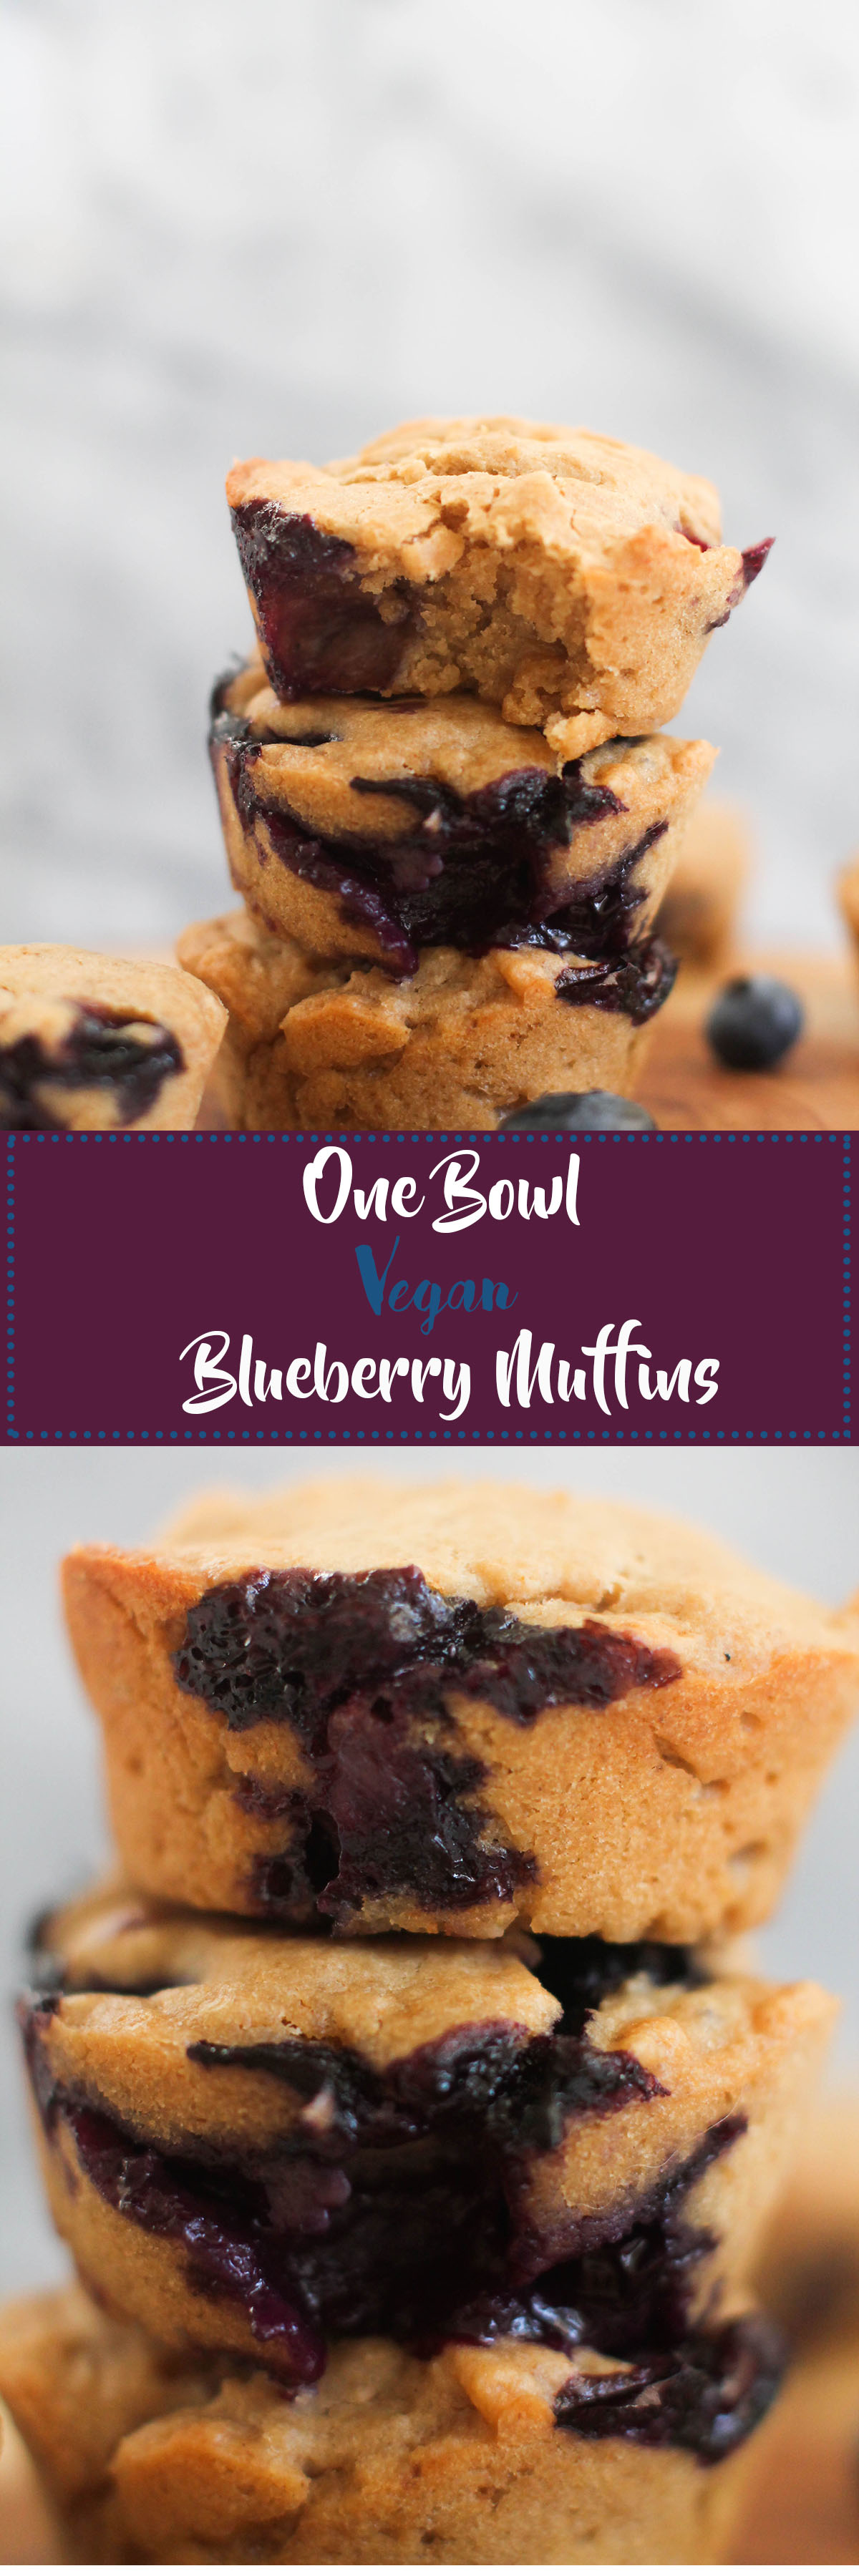 These one bowl vegan blueberry muffins are vegan, refined sugar free, healthy, and absolutely delicious. Made with 8 ingredients and ready in under an hour, they make for the perfect snack!